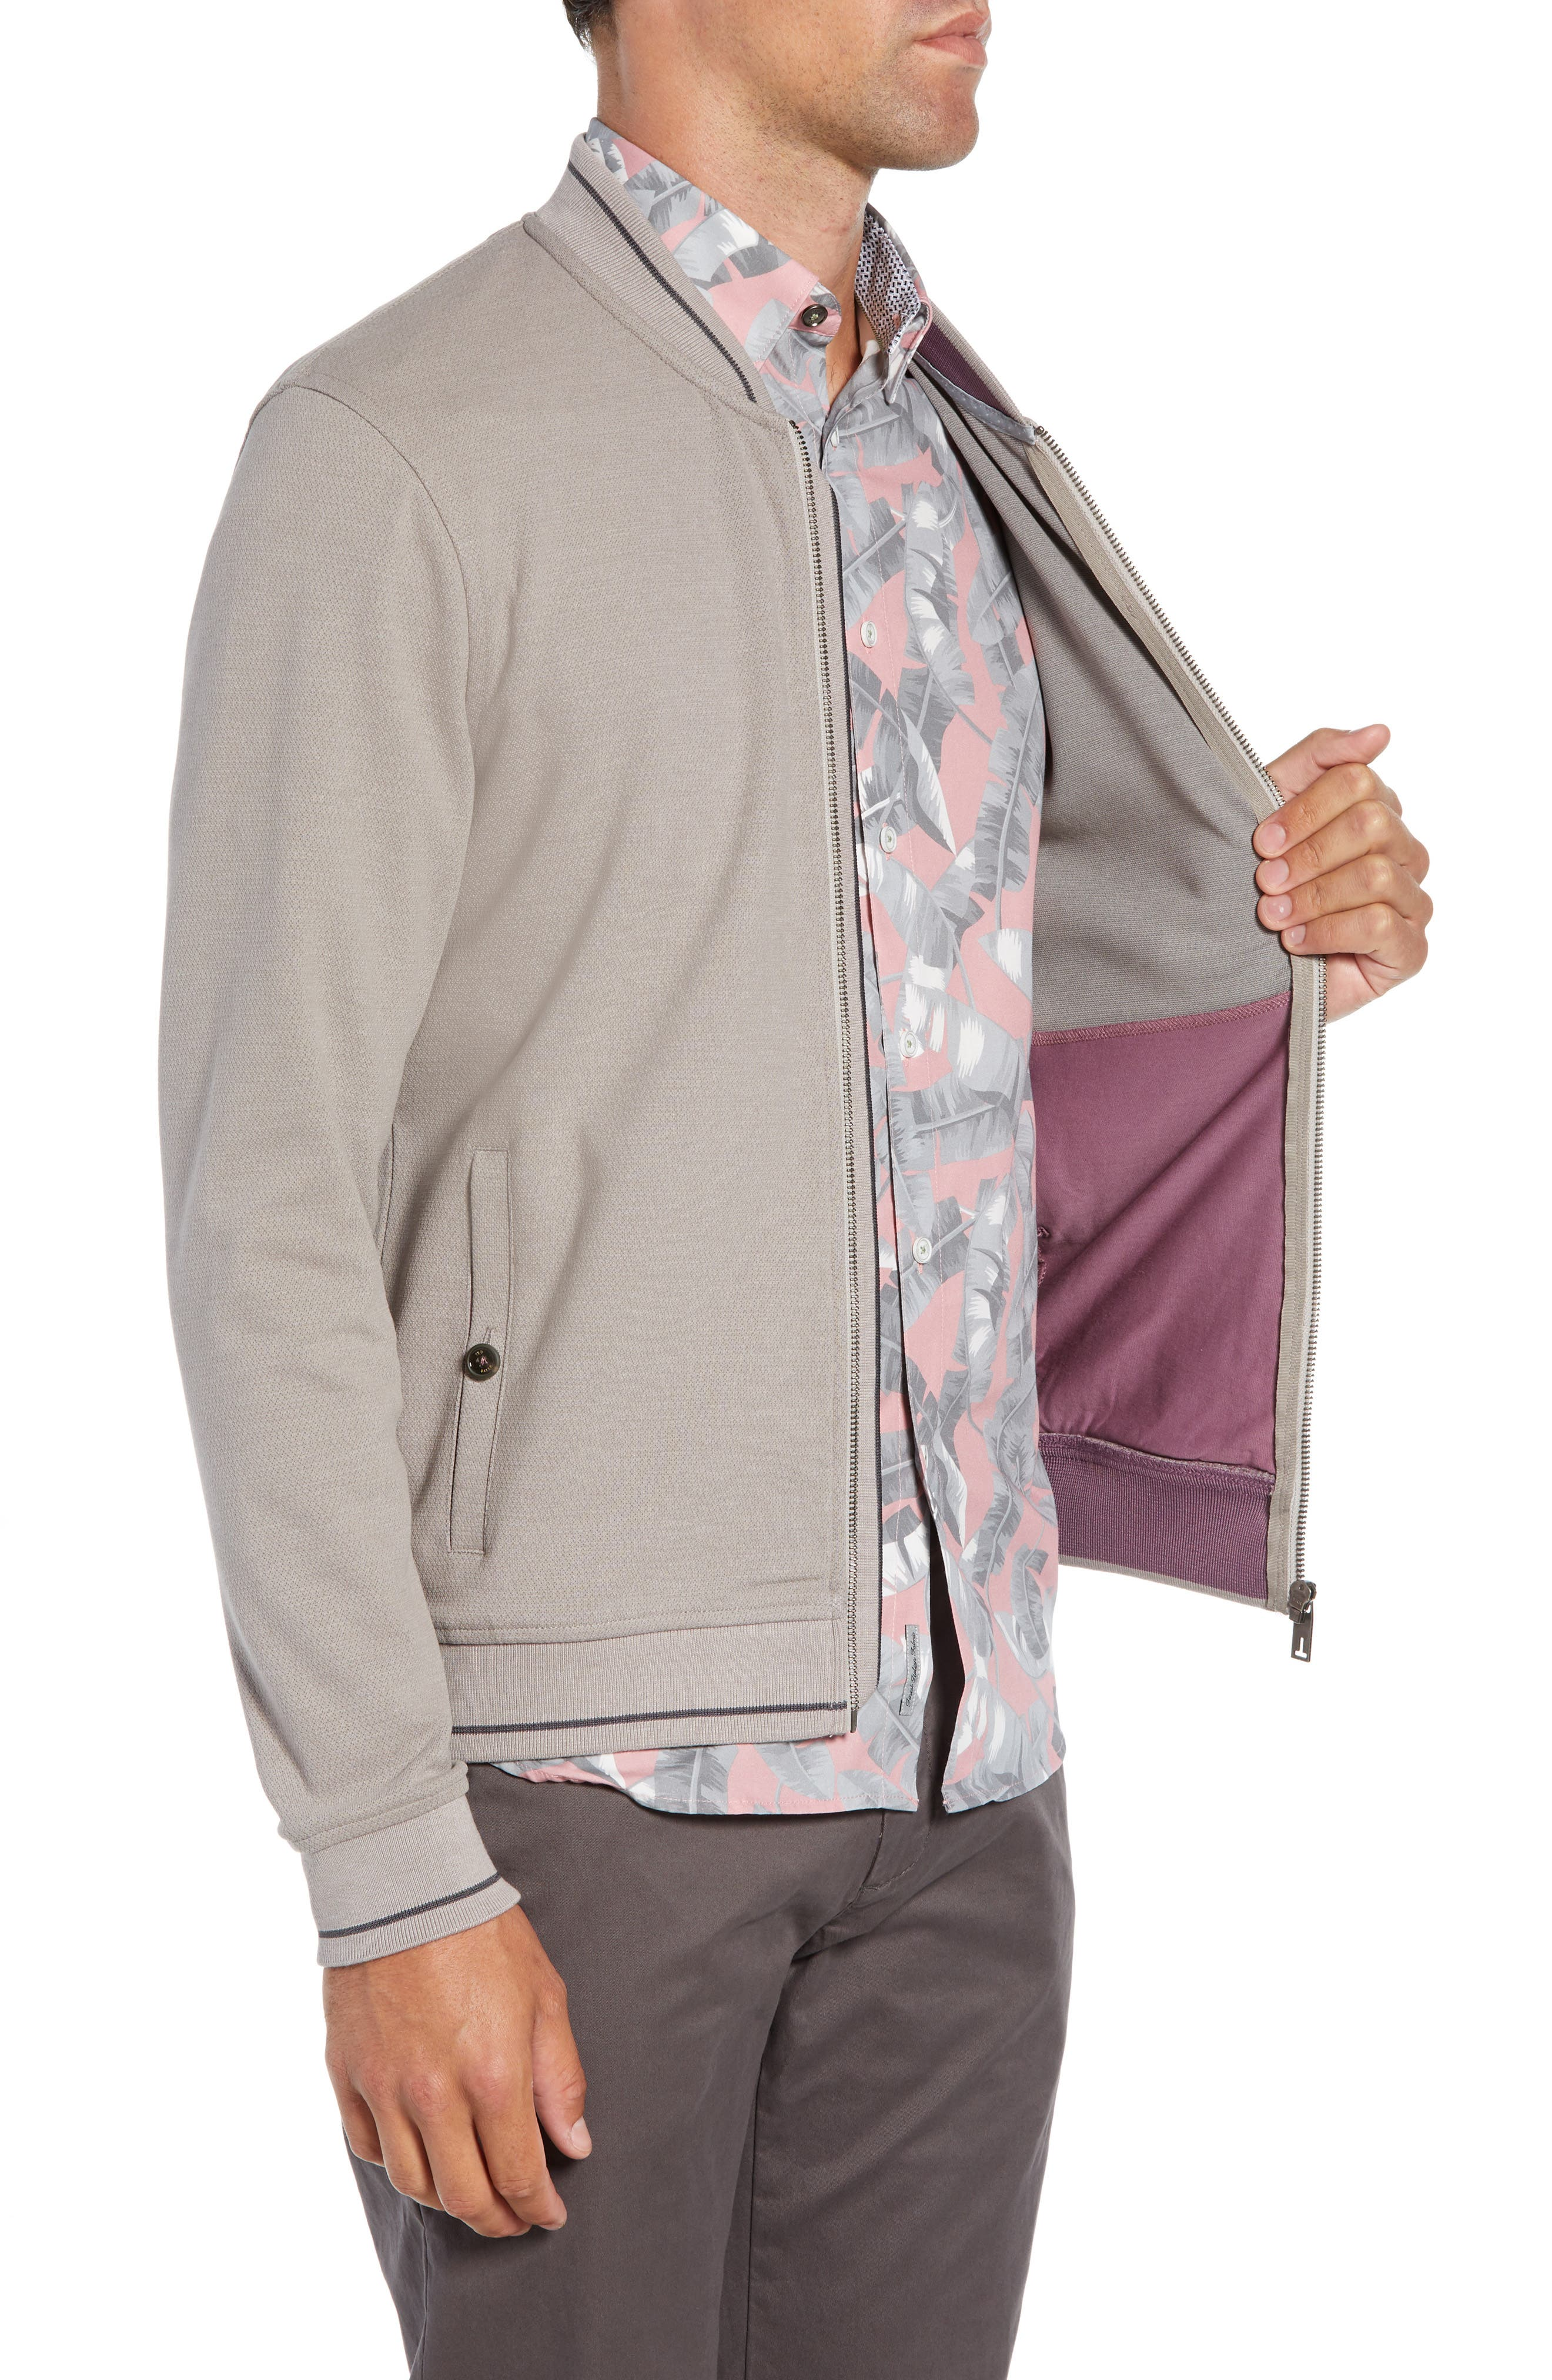 Chicpea Jersey Bomber Jacket,                             Alternate thumbnail 3, color,                             250